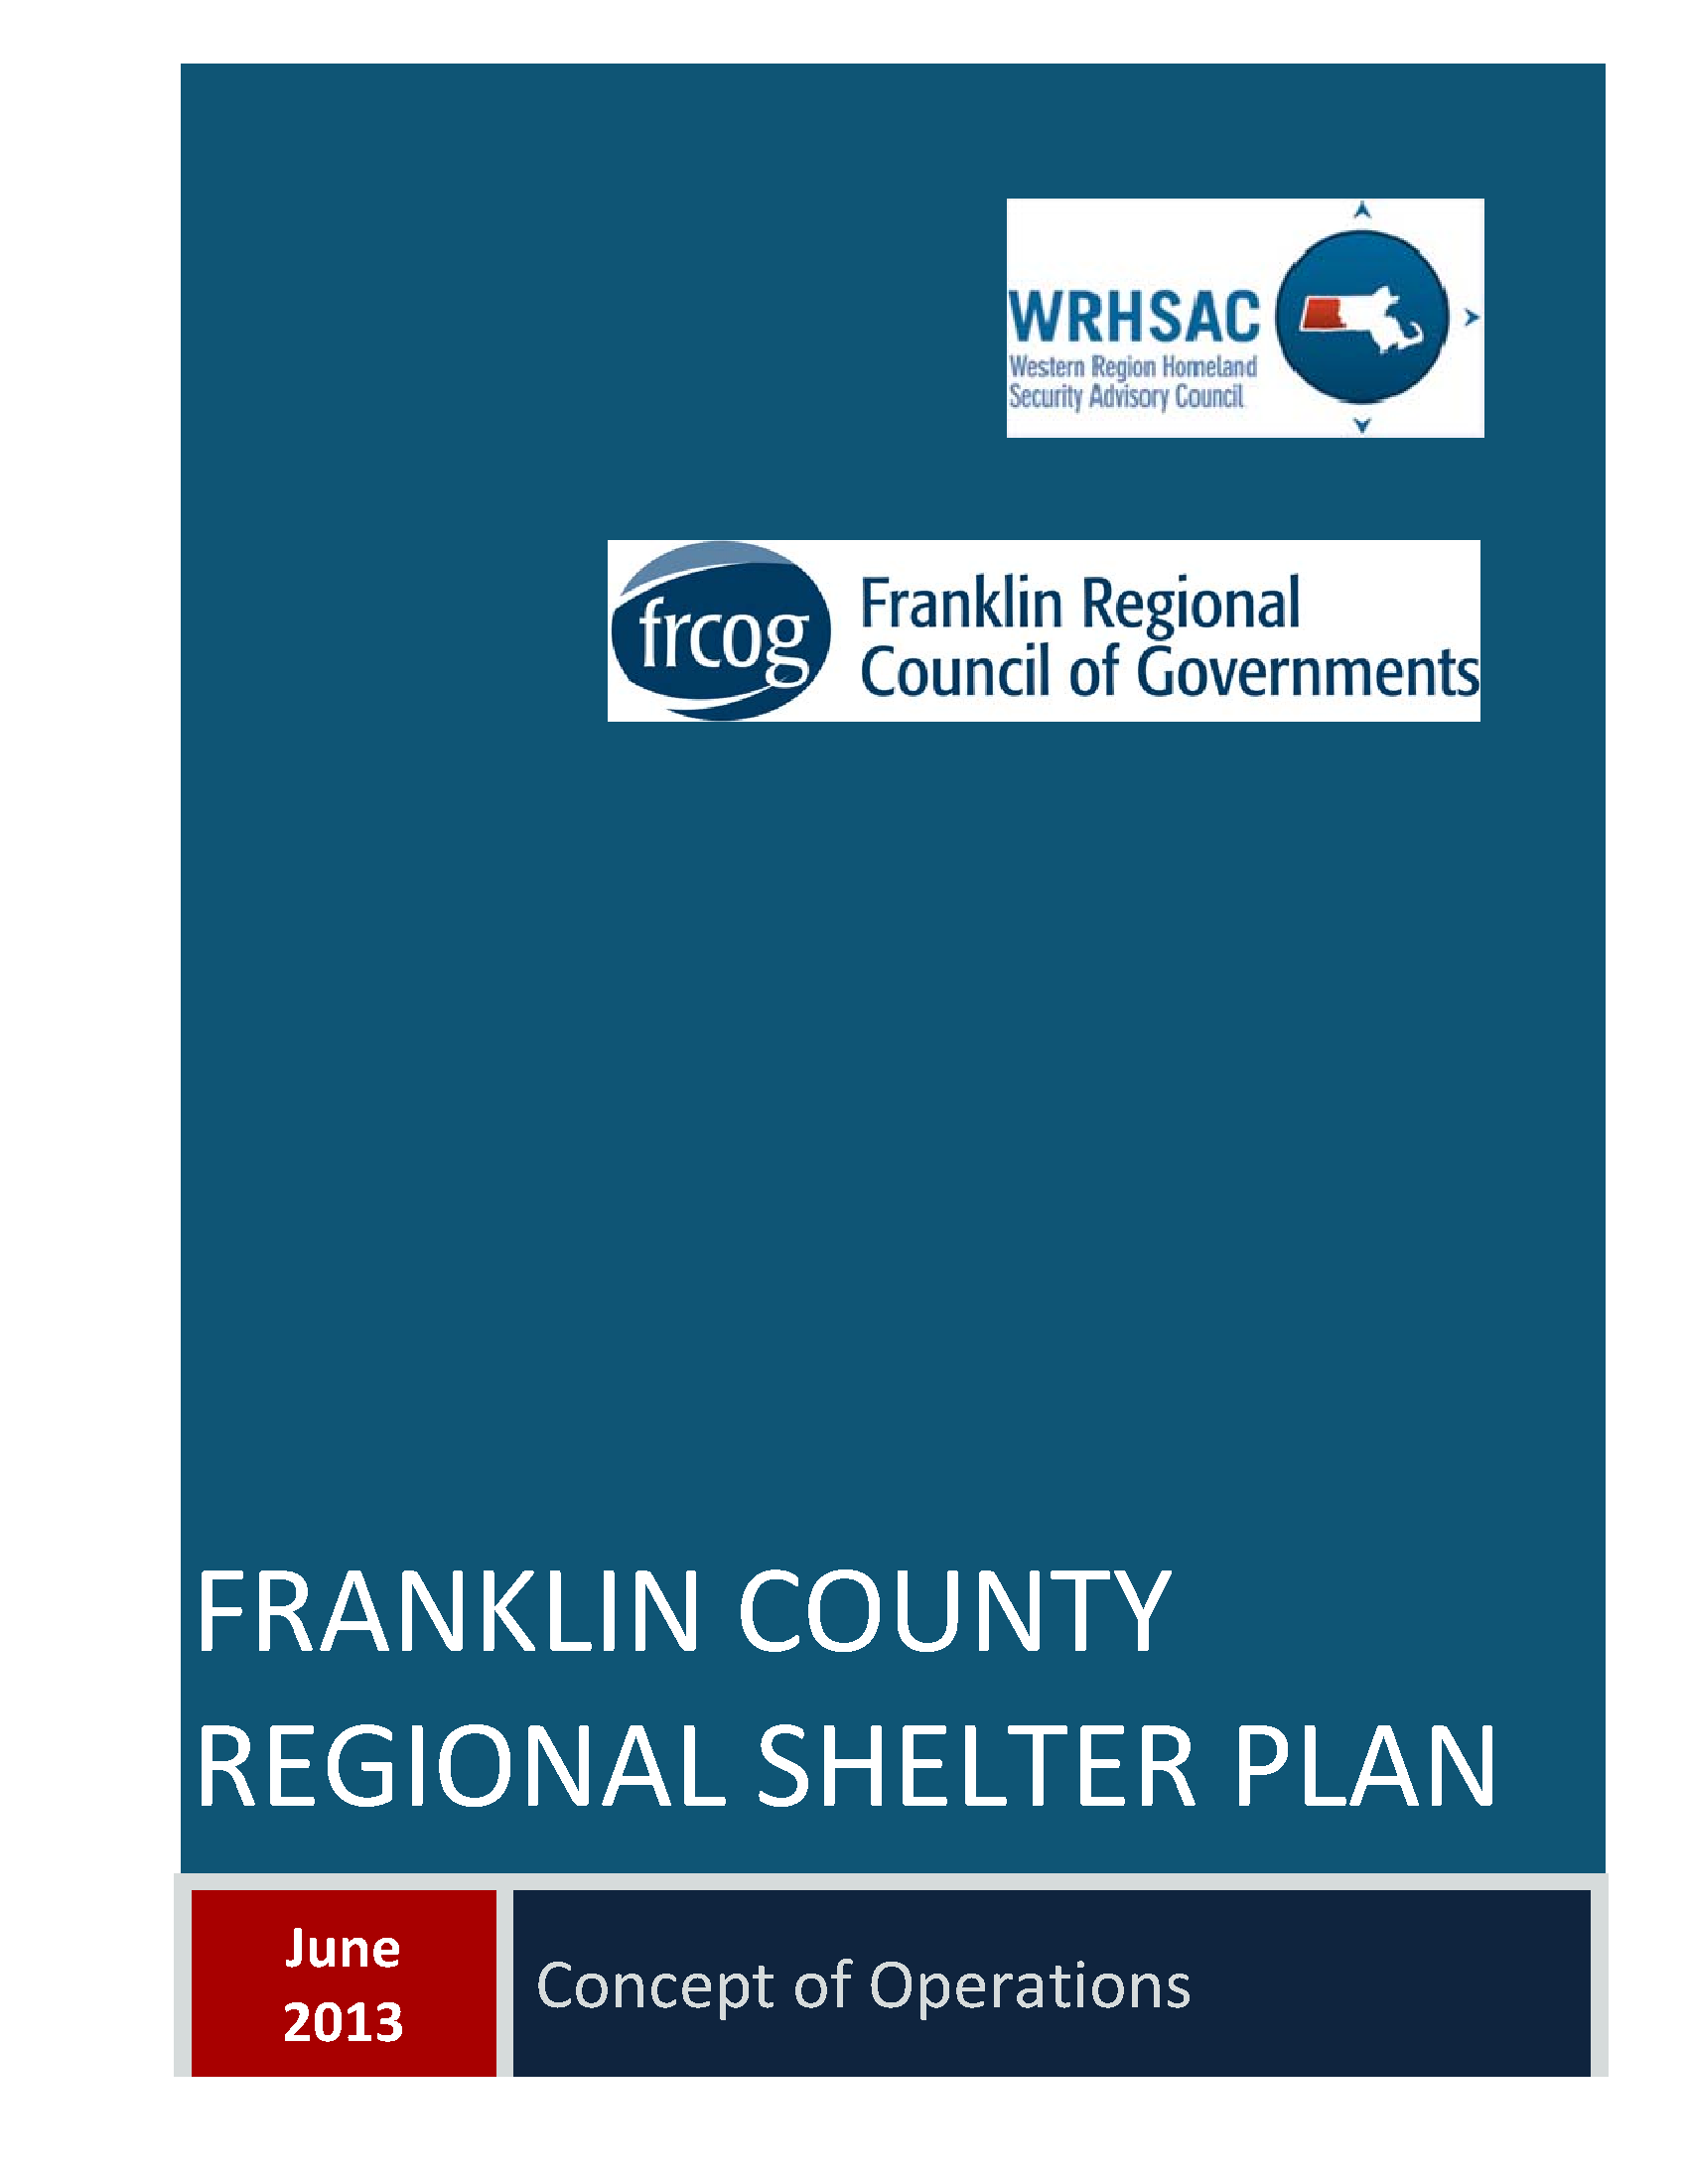 Cover page of the Franklin County Regional Sheltering Plan